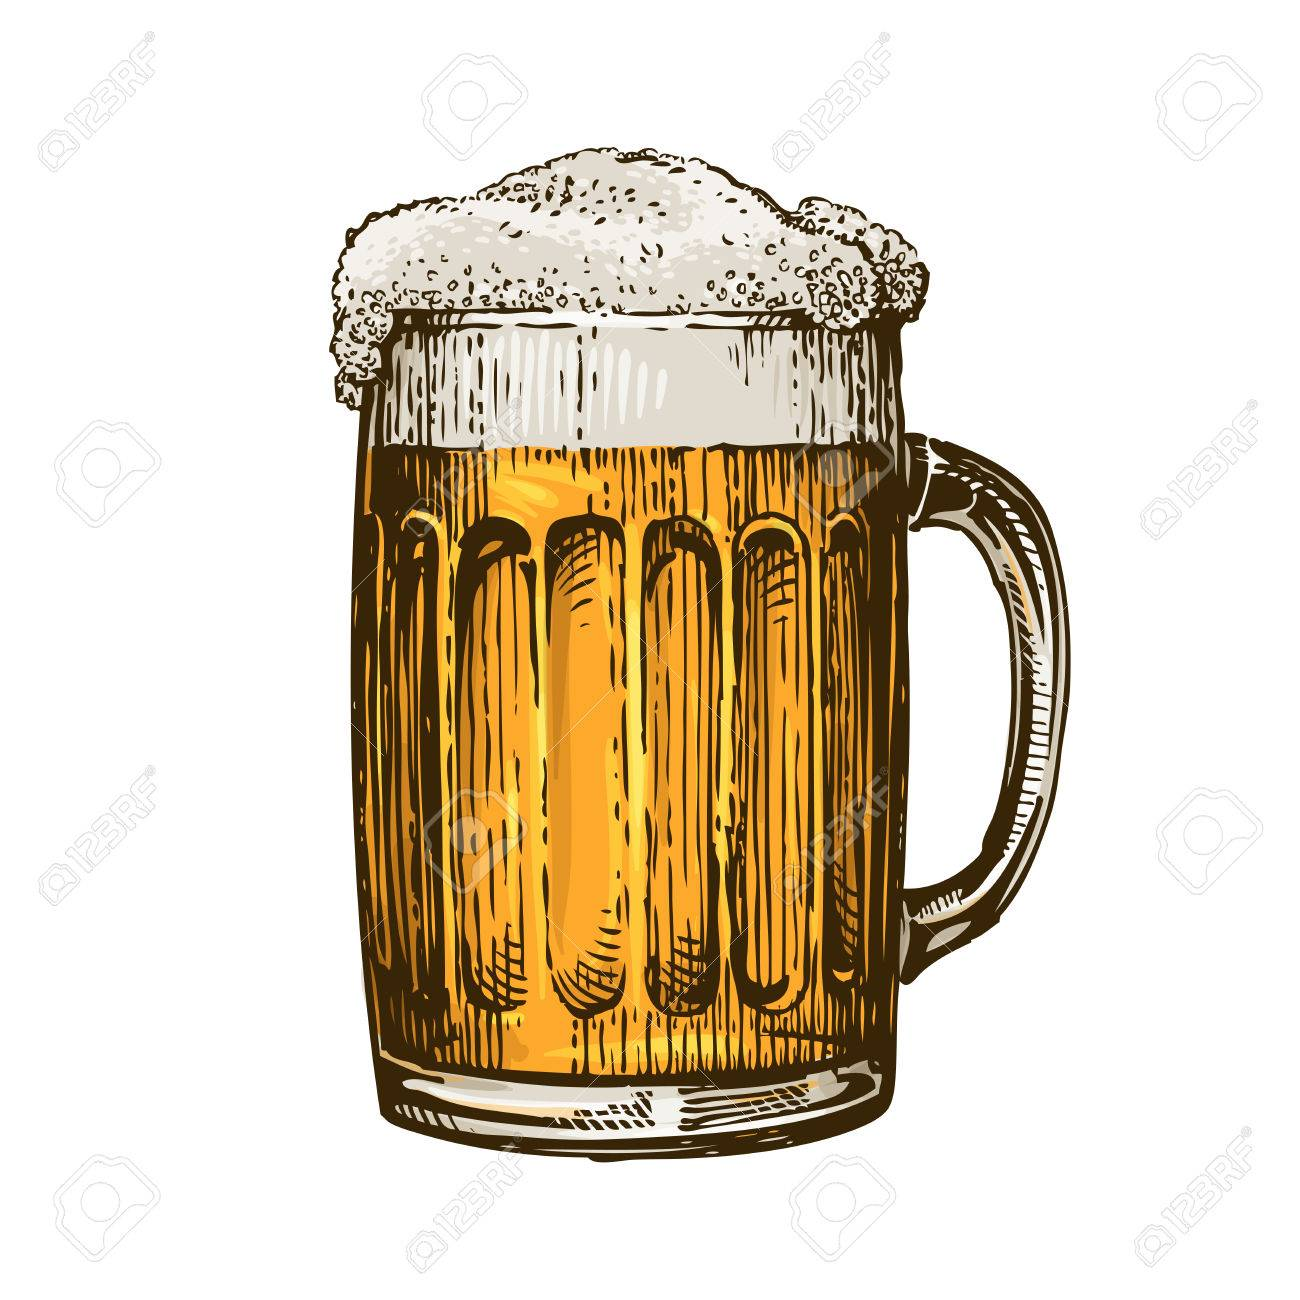 Beer in glass mug with foam. Hand drawn vector illustration isolated on white background - 68940476